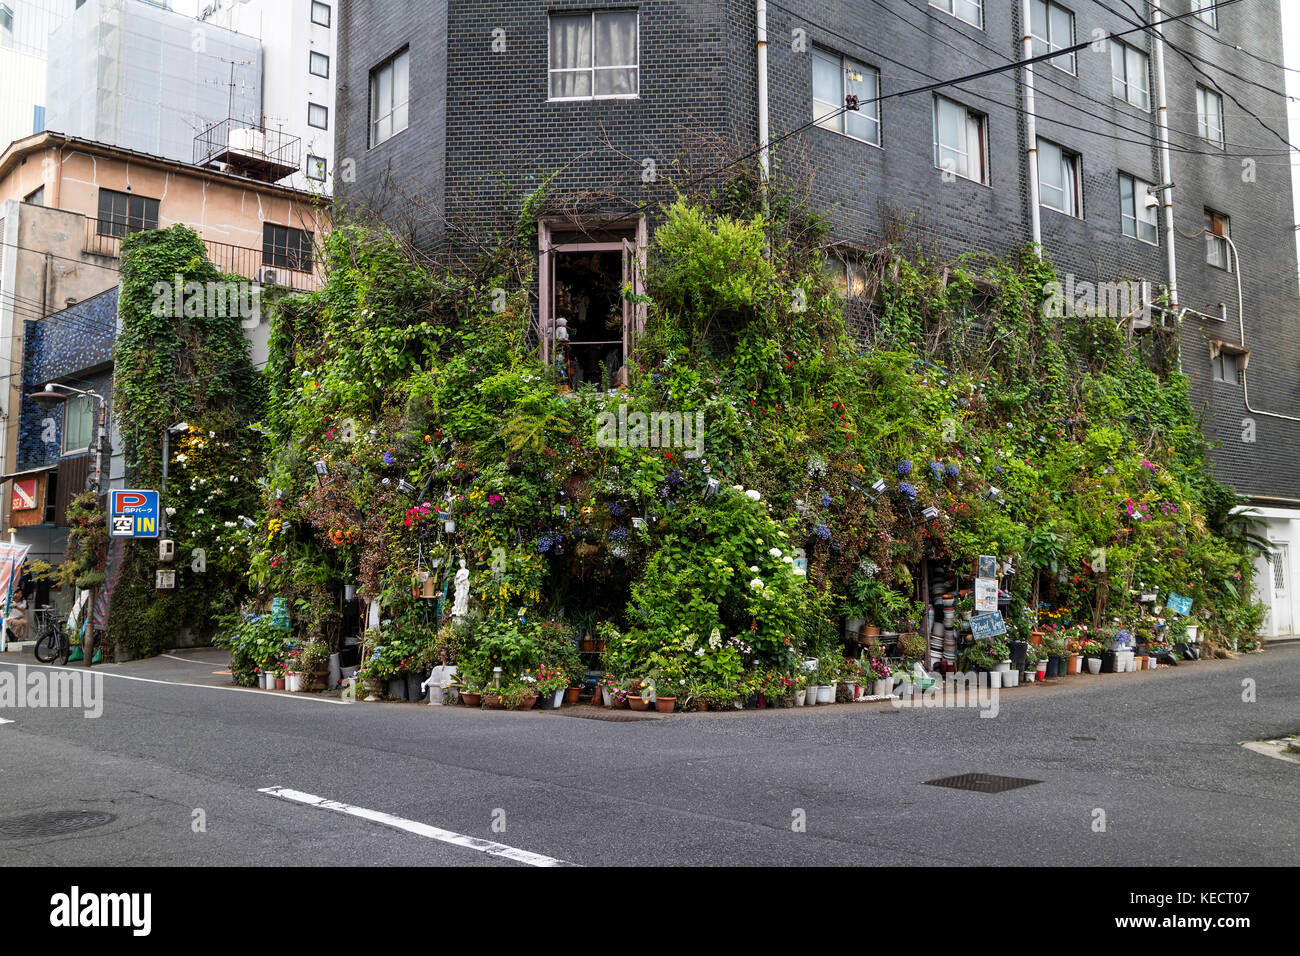 Hiroshima,Japan -  May 23, 2017: Street view of a corner of a street in Hiroshima with lots of green plants and - Stock Image